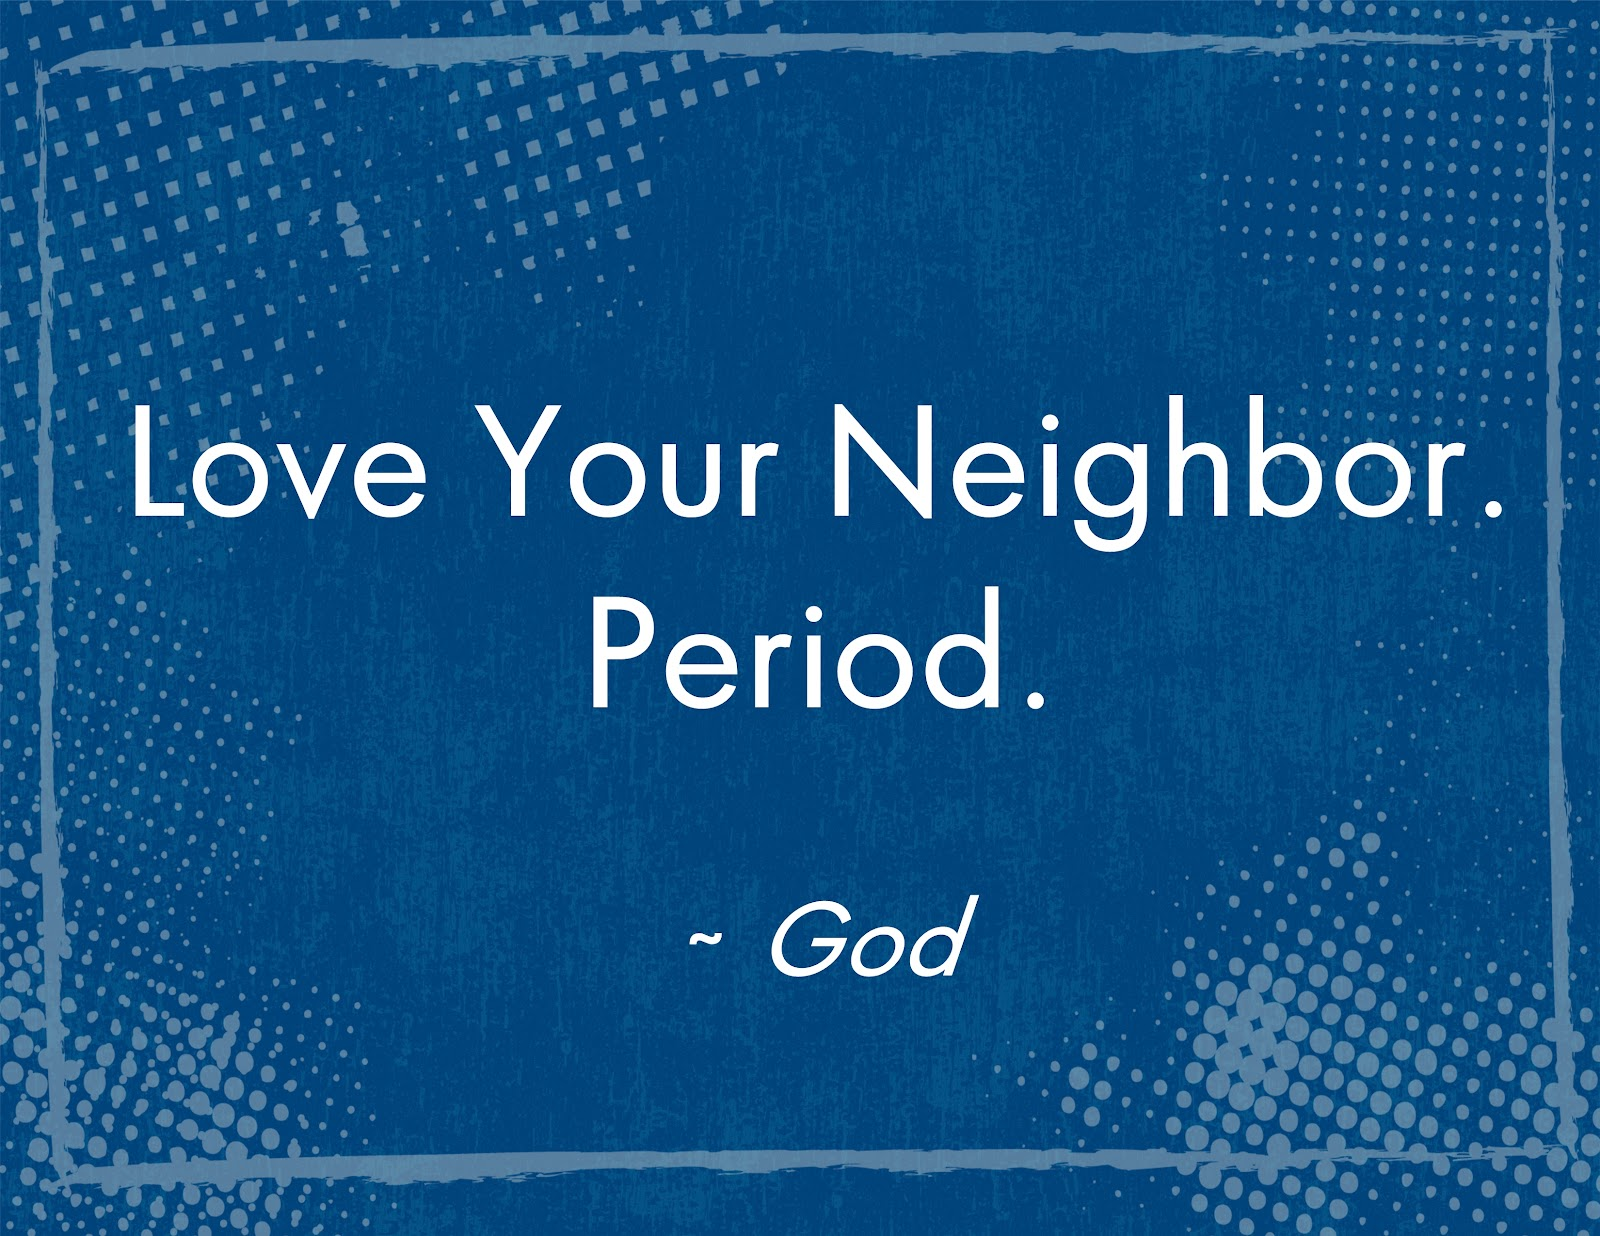 Quotes About Love Your Neighbor : Justinas Random Acts of Kindness: Love your neighbor...